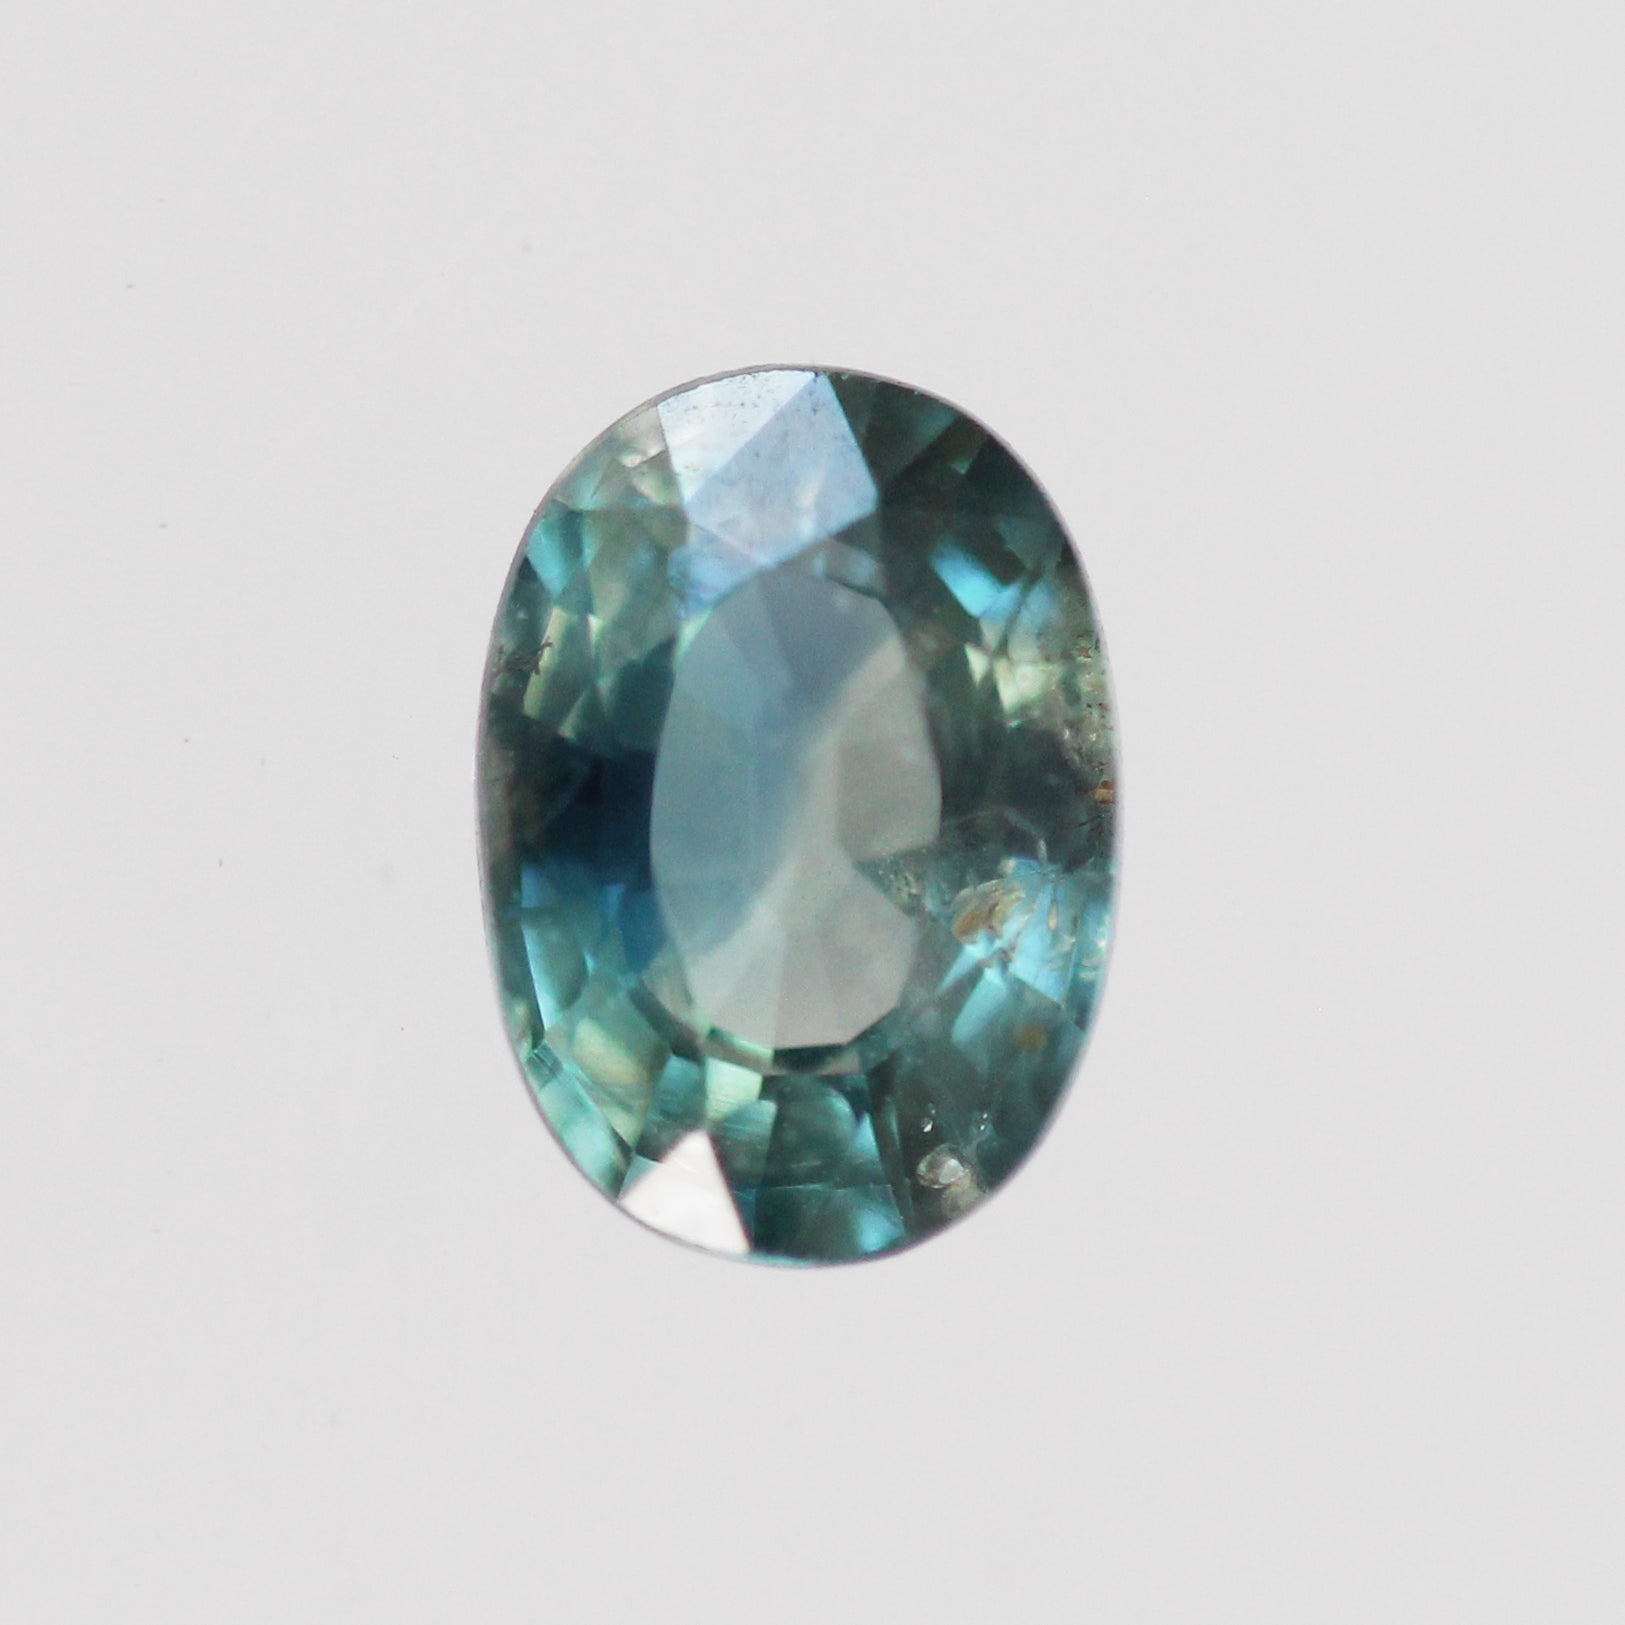 1.09ct Oval Sapphire for Custom Work - Inventory Code S109 - Celestial Diamonds ® by Midwinter Co.